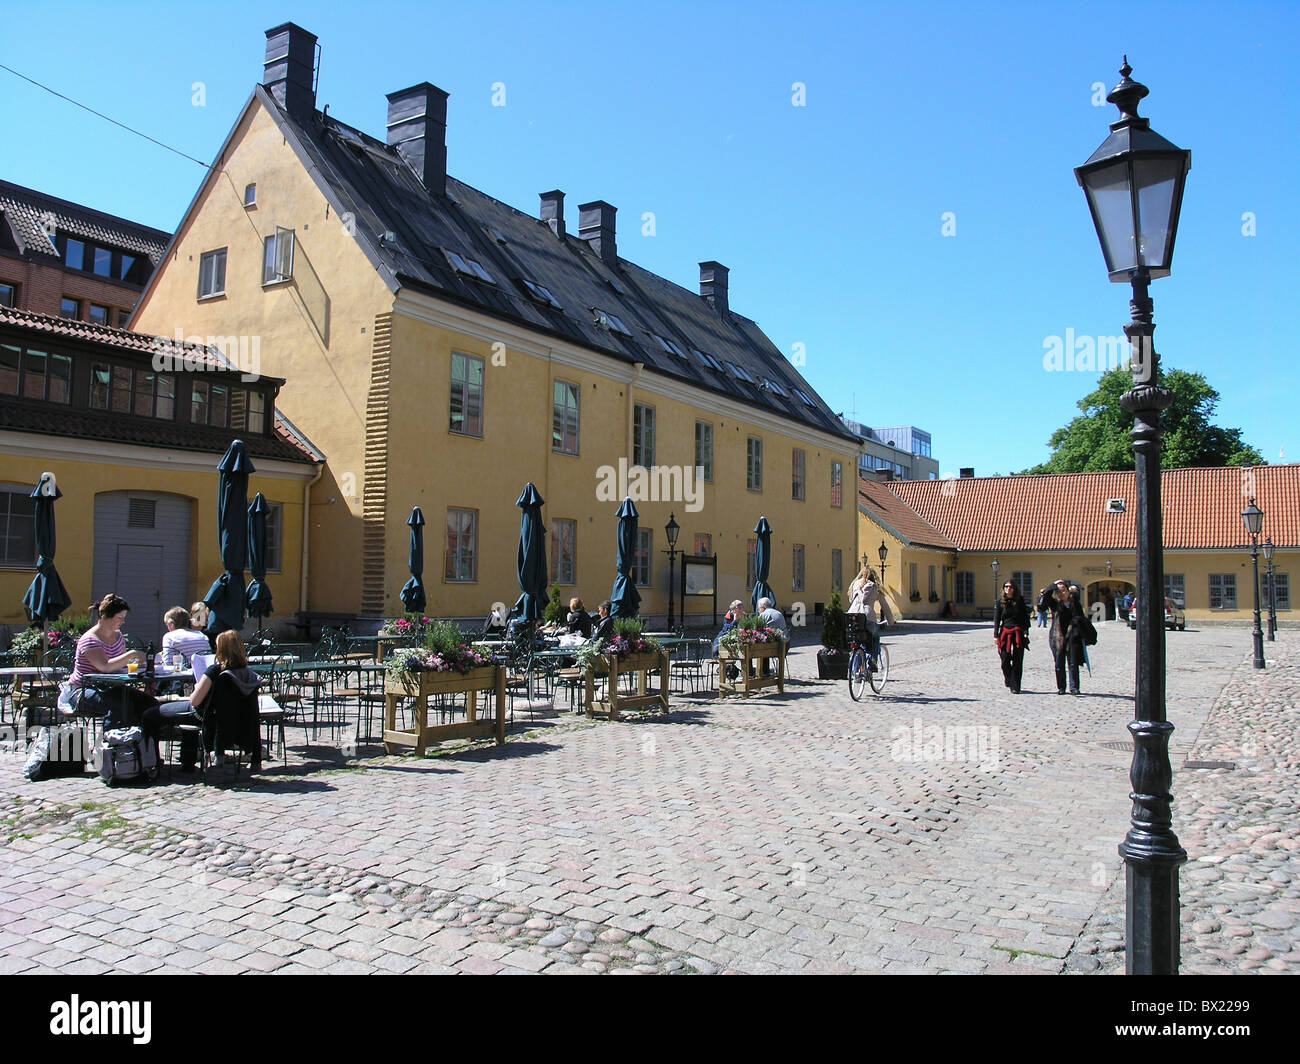 cafe company guests lanterns lives outside people street cafe Sweden Europe - Stock Image